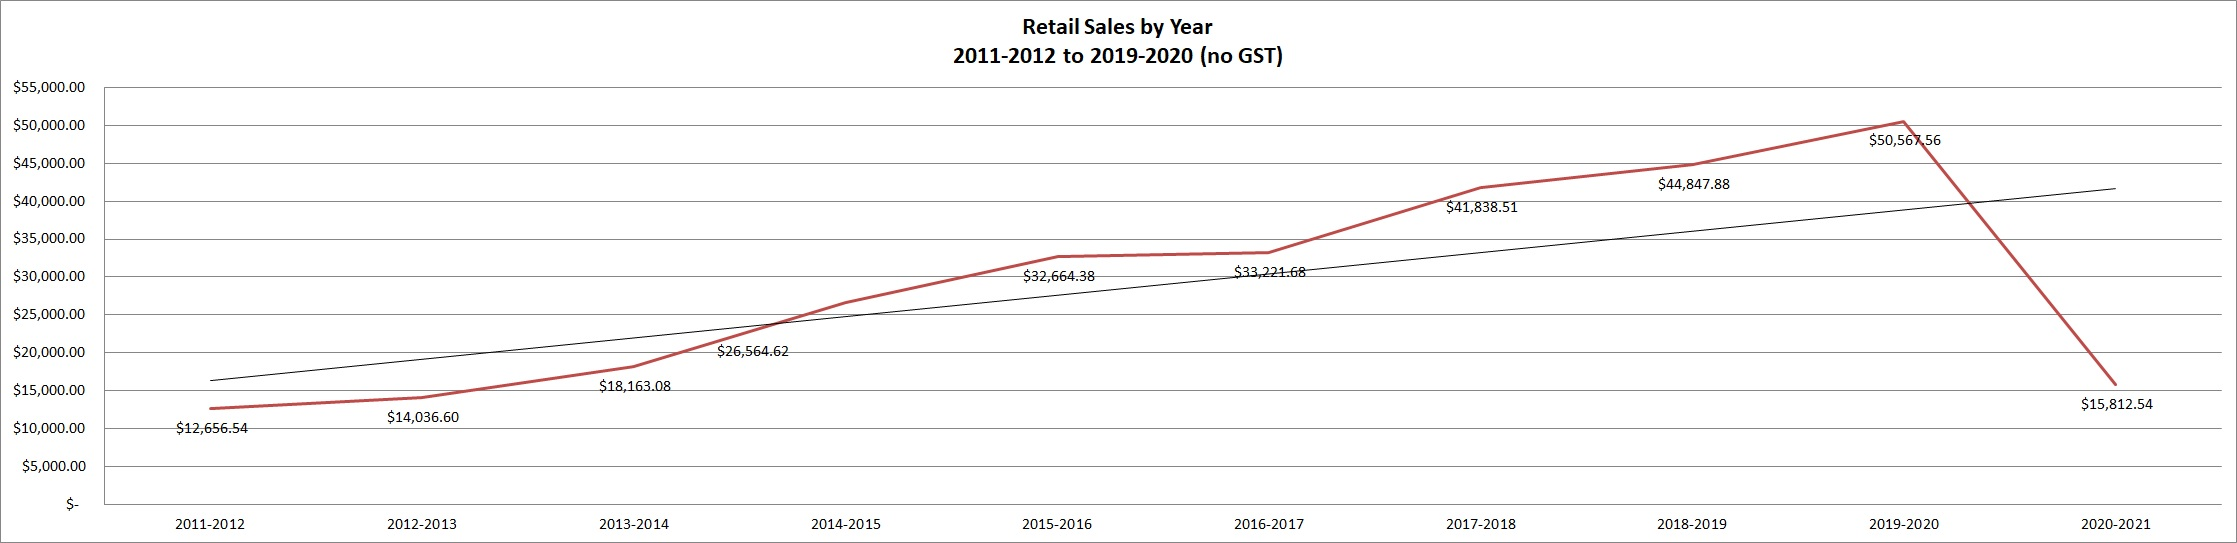 Line chart showing retail sales by year.